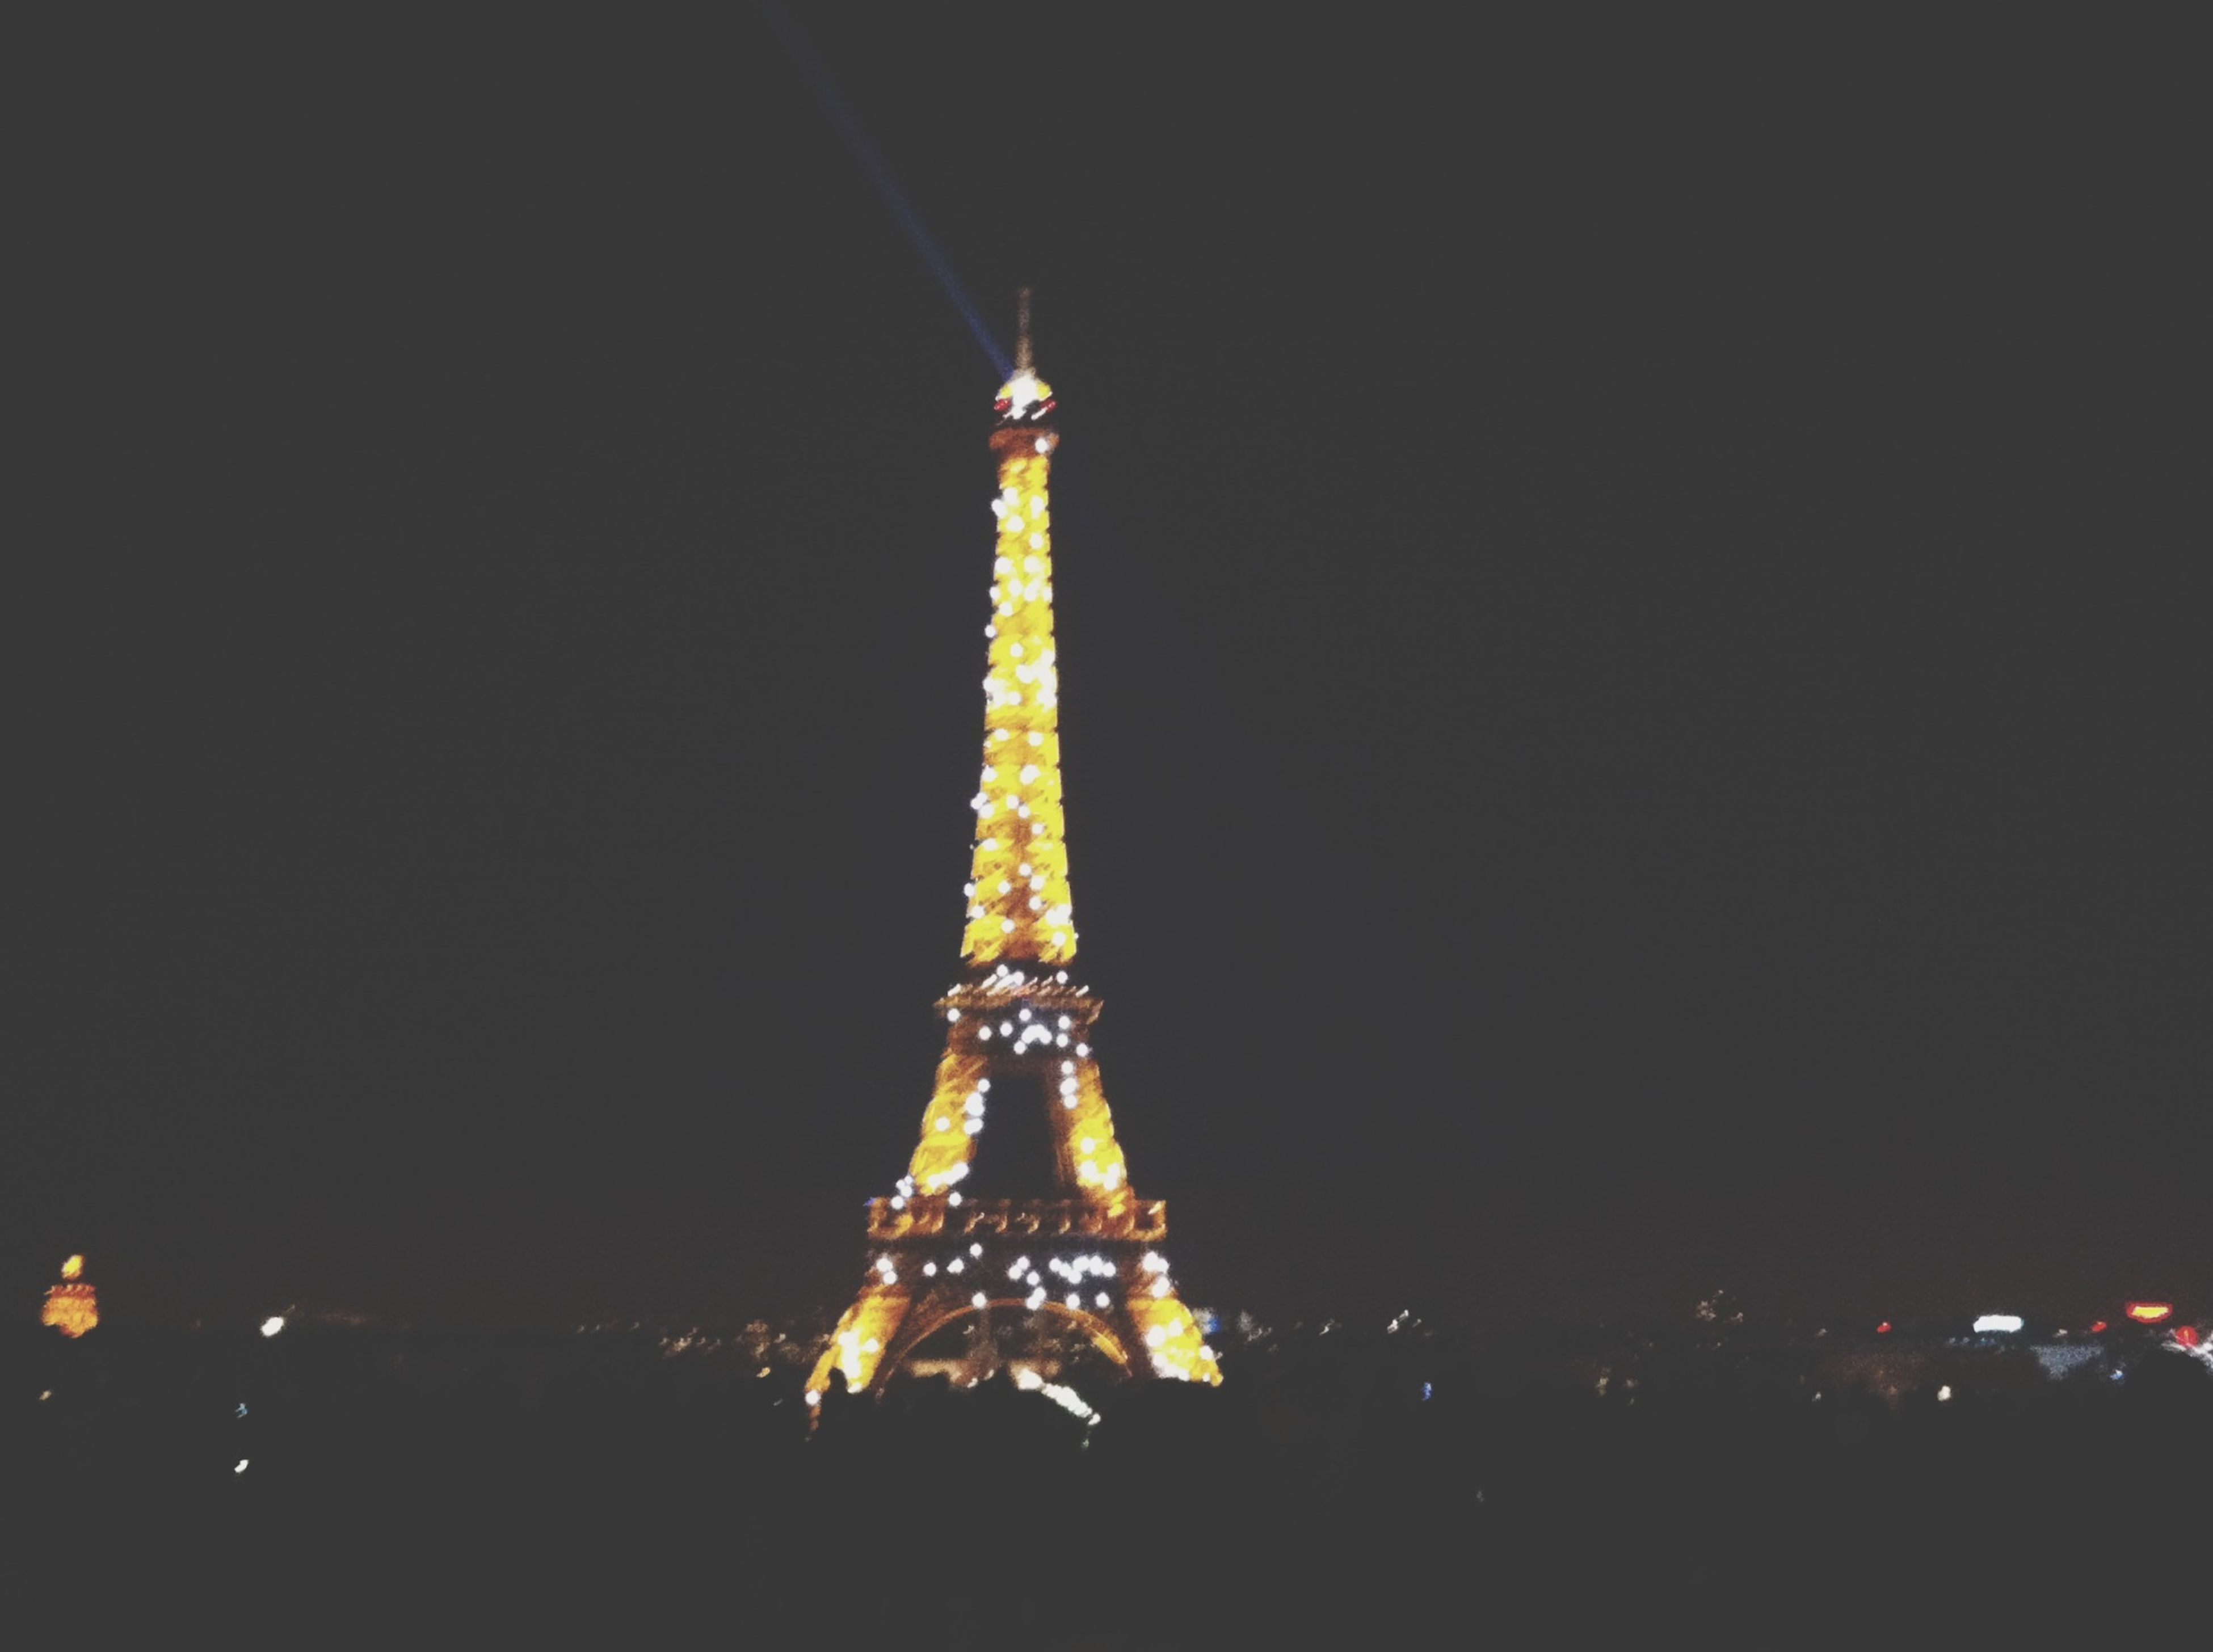 illuminated, night, architecture, built structure, famous place, travel destinations, international landmark, clear sky, copy space, travel, tourism, capital cities, building exterior, eiffel tower, tower, city, sky, tall - high, low angle view, outdoors